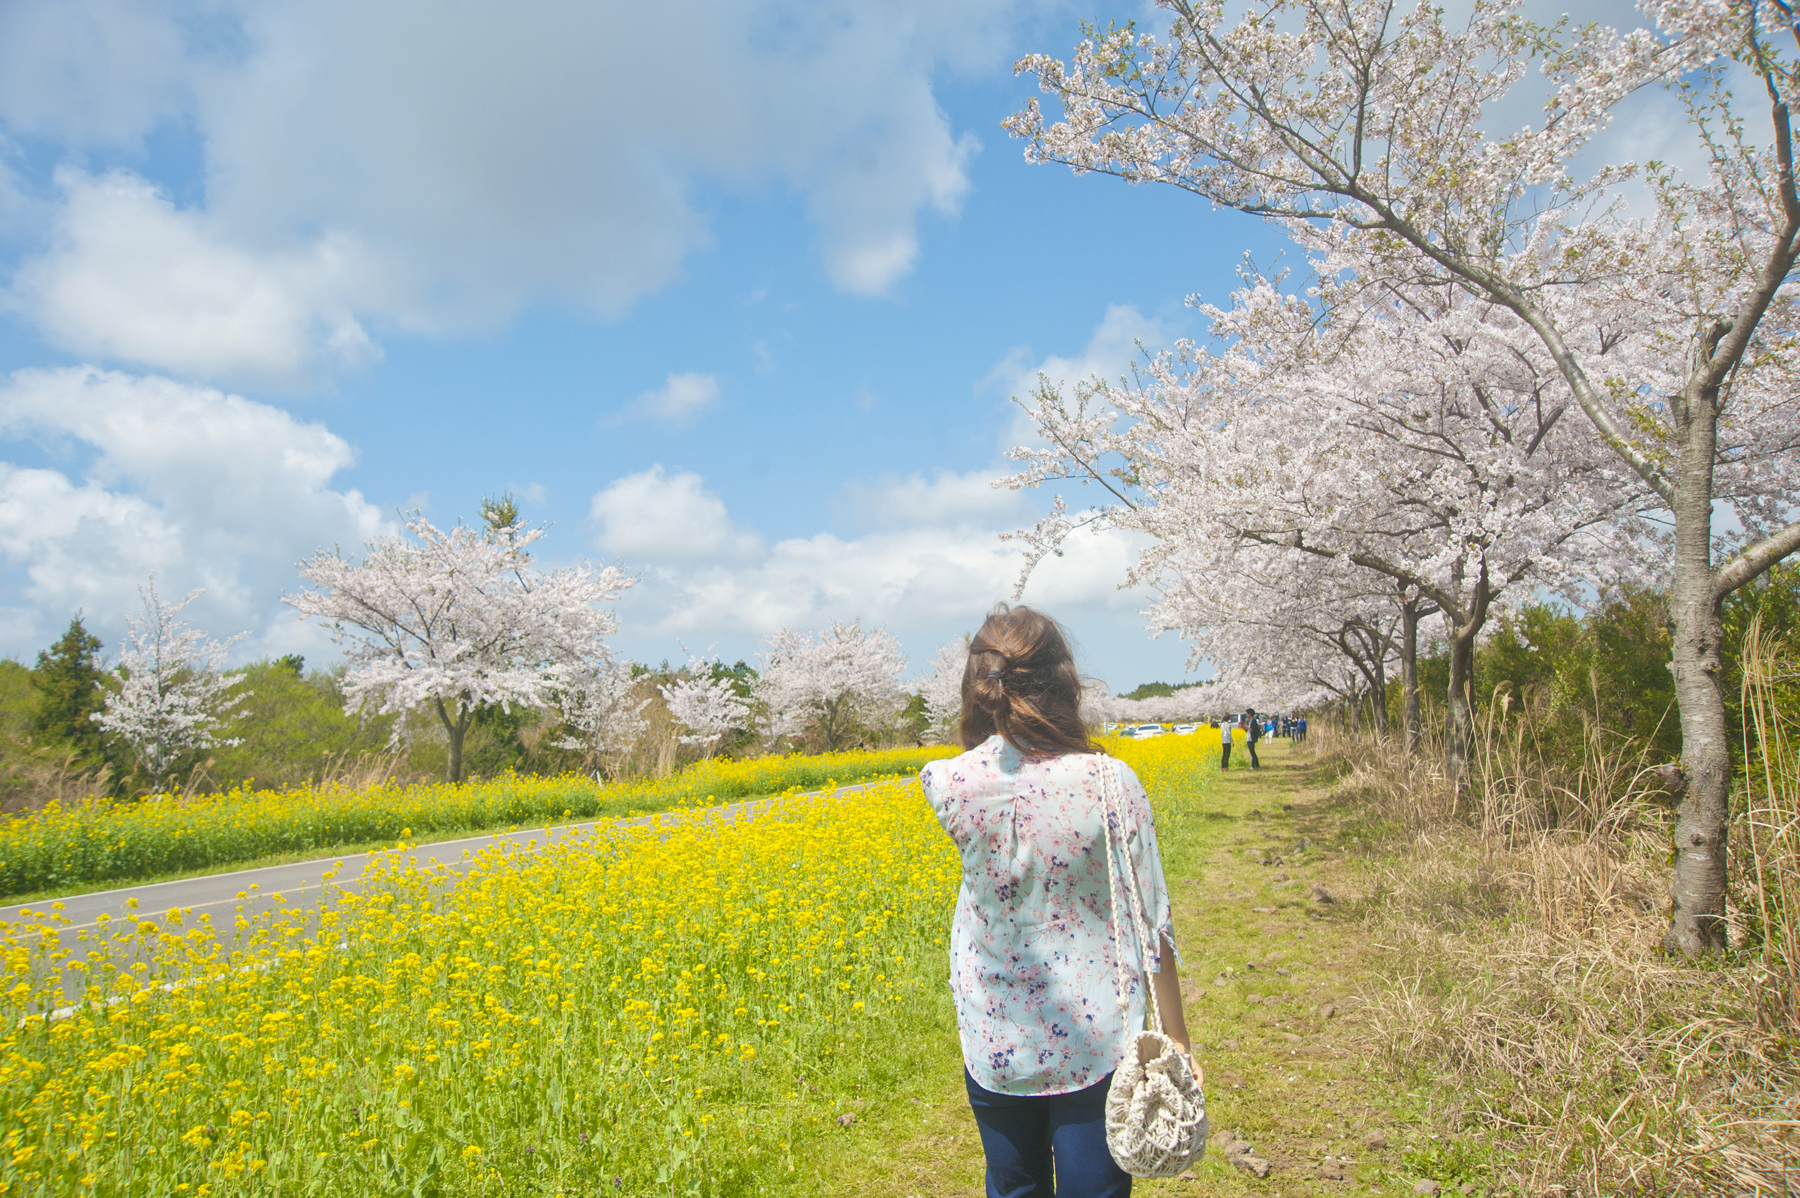 The beginning of April marks the cherry blossom season on Jeju Island, with the rest of Korea following swiftly as temperatures rise.  For a few beautiful days, the whole island is covered in flowers - not only cherry blossoms, but yellow canola flowers and the last of winter's camellia flowers can be found.  Spring is in the air and everyone heads outdoors for a picnic under cherry trees or to one of the festivals that celebrate the season.  If you plan on catching this colorful and romantic moment in time when you travel to South Korea, it's best to keep an eye on weather predictions and plan your trip accordingly.  I've got some tips for you below - and a whole lot of pictures and travel sketches to capture that cherry blossom ~aesthetic~.